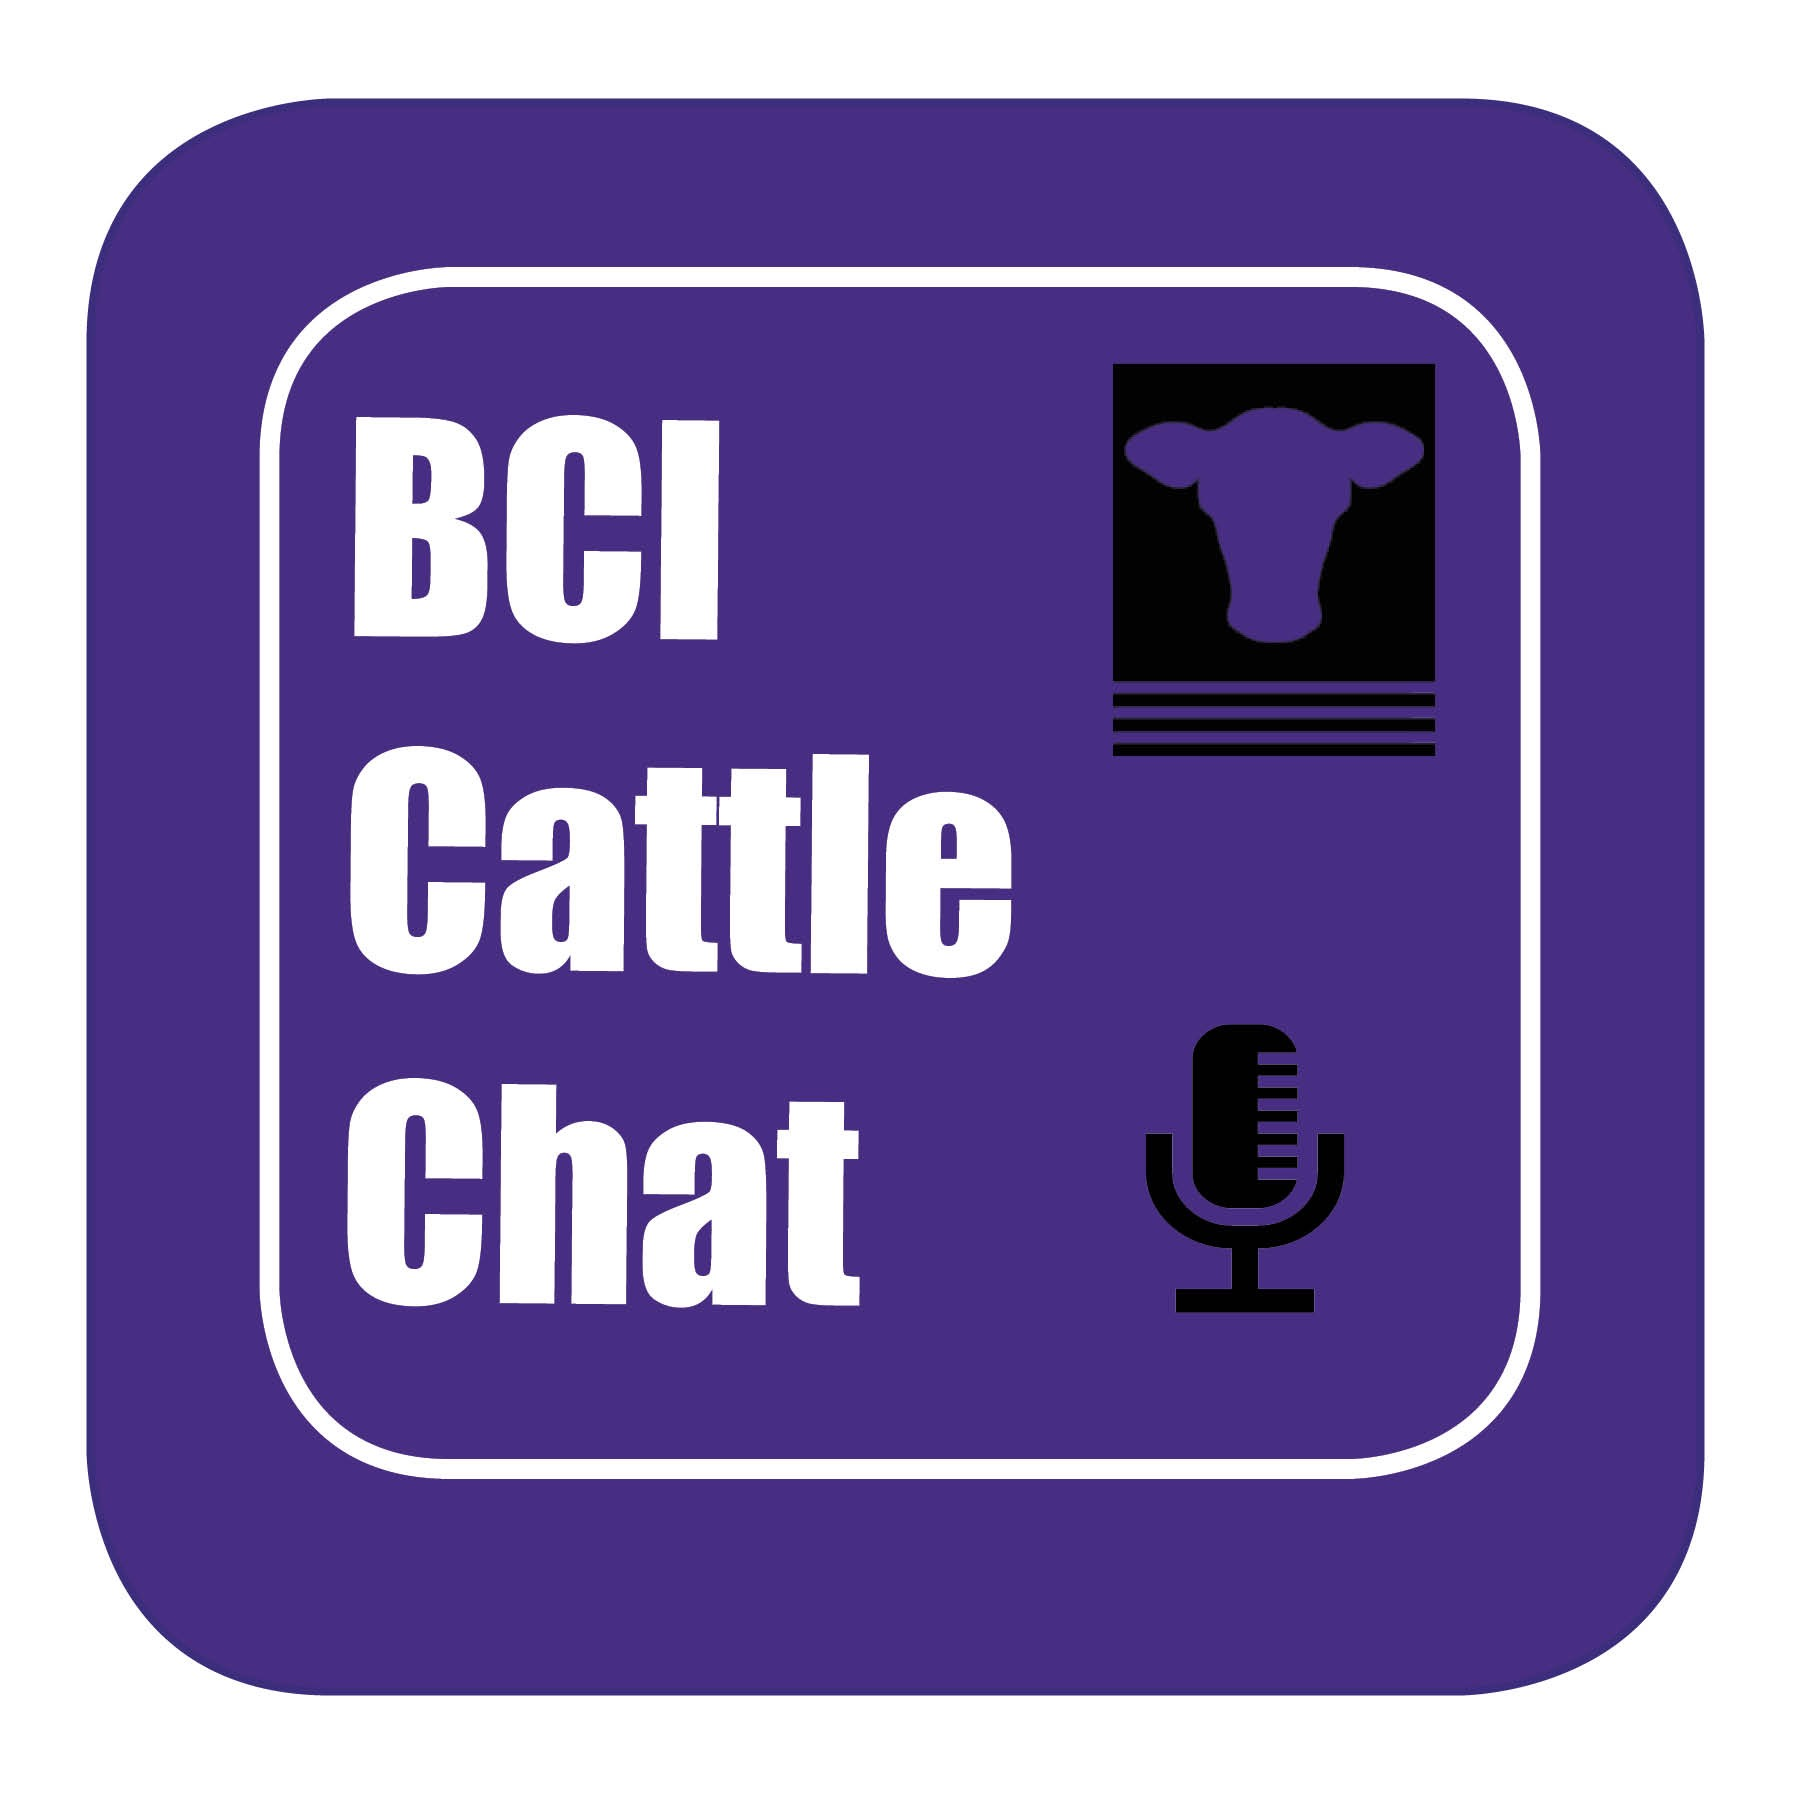 BCI Cattle Chat - Episode 8